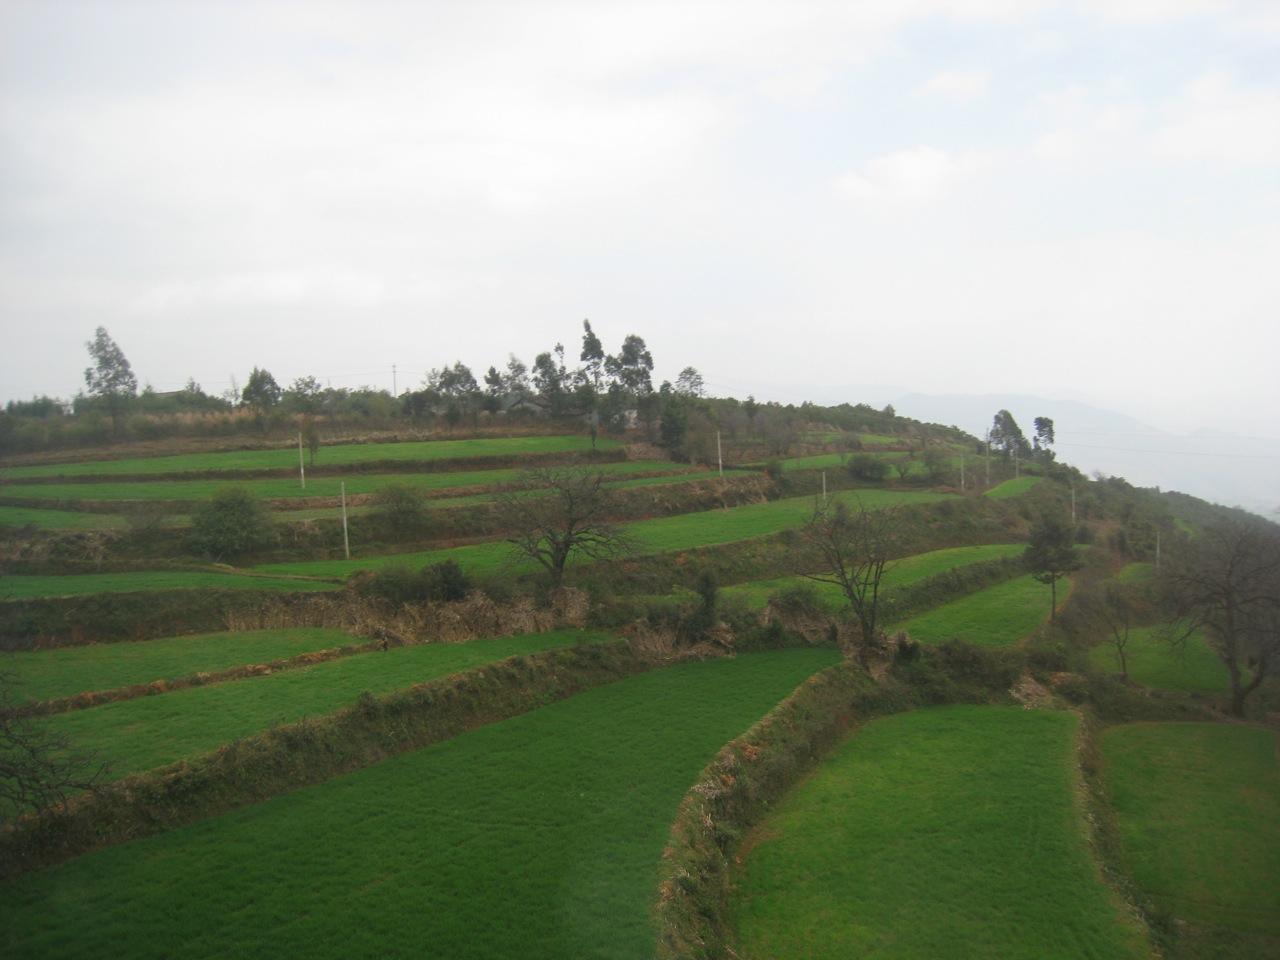 local agriculture